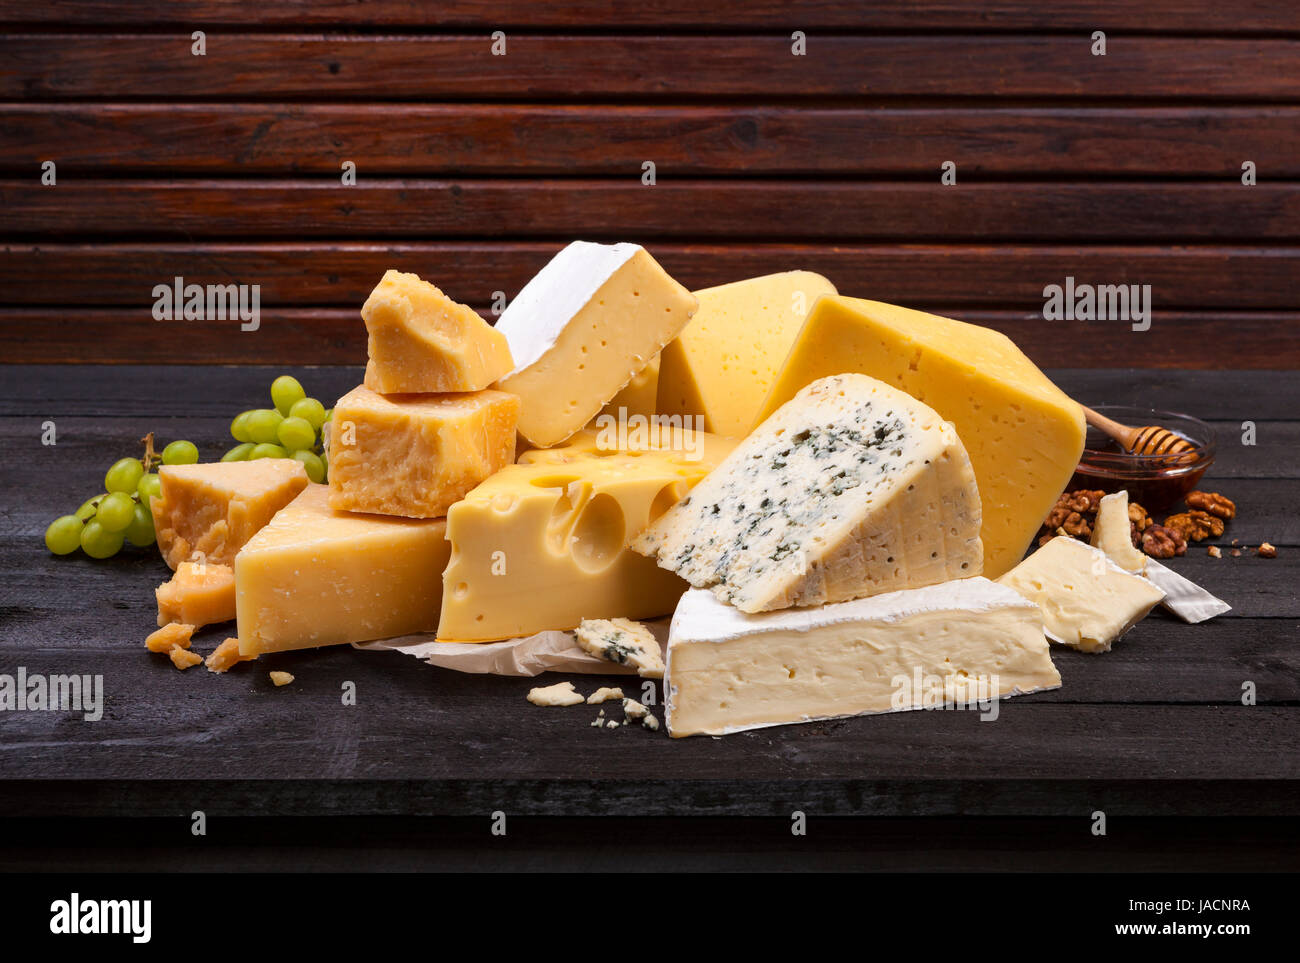 Cheese on black wooden table. - Stock Image